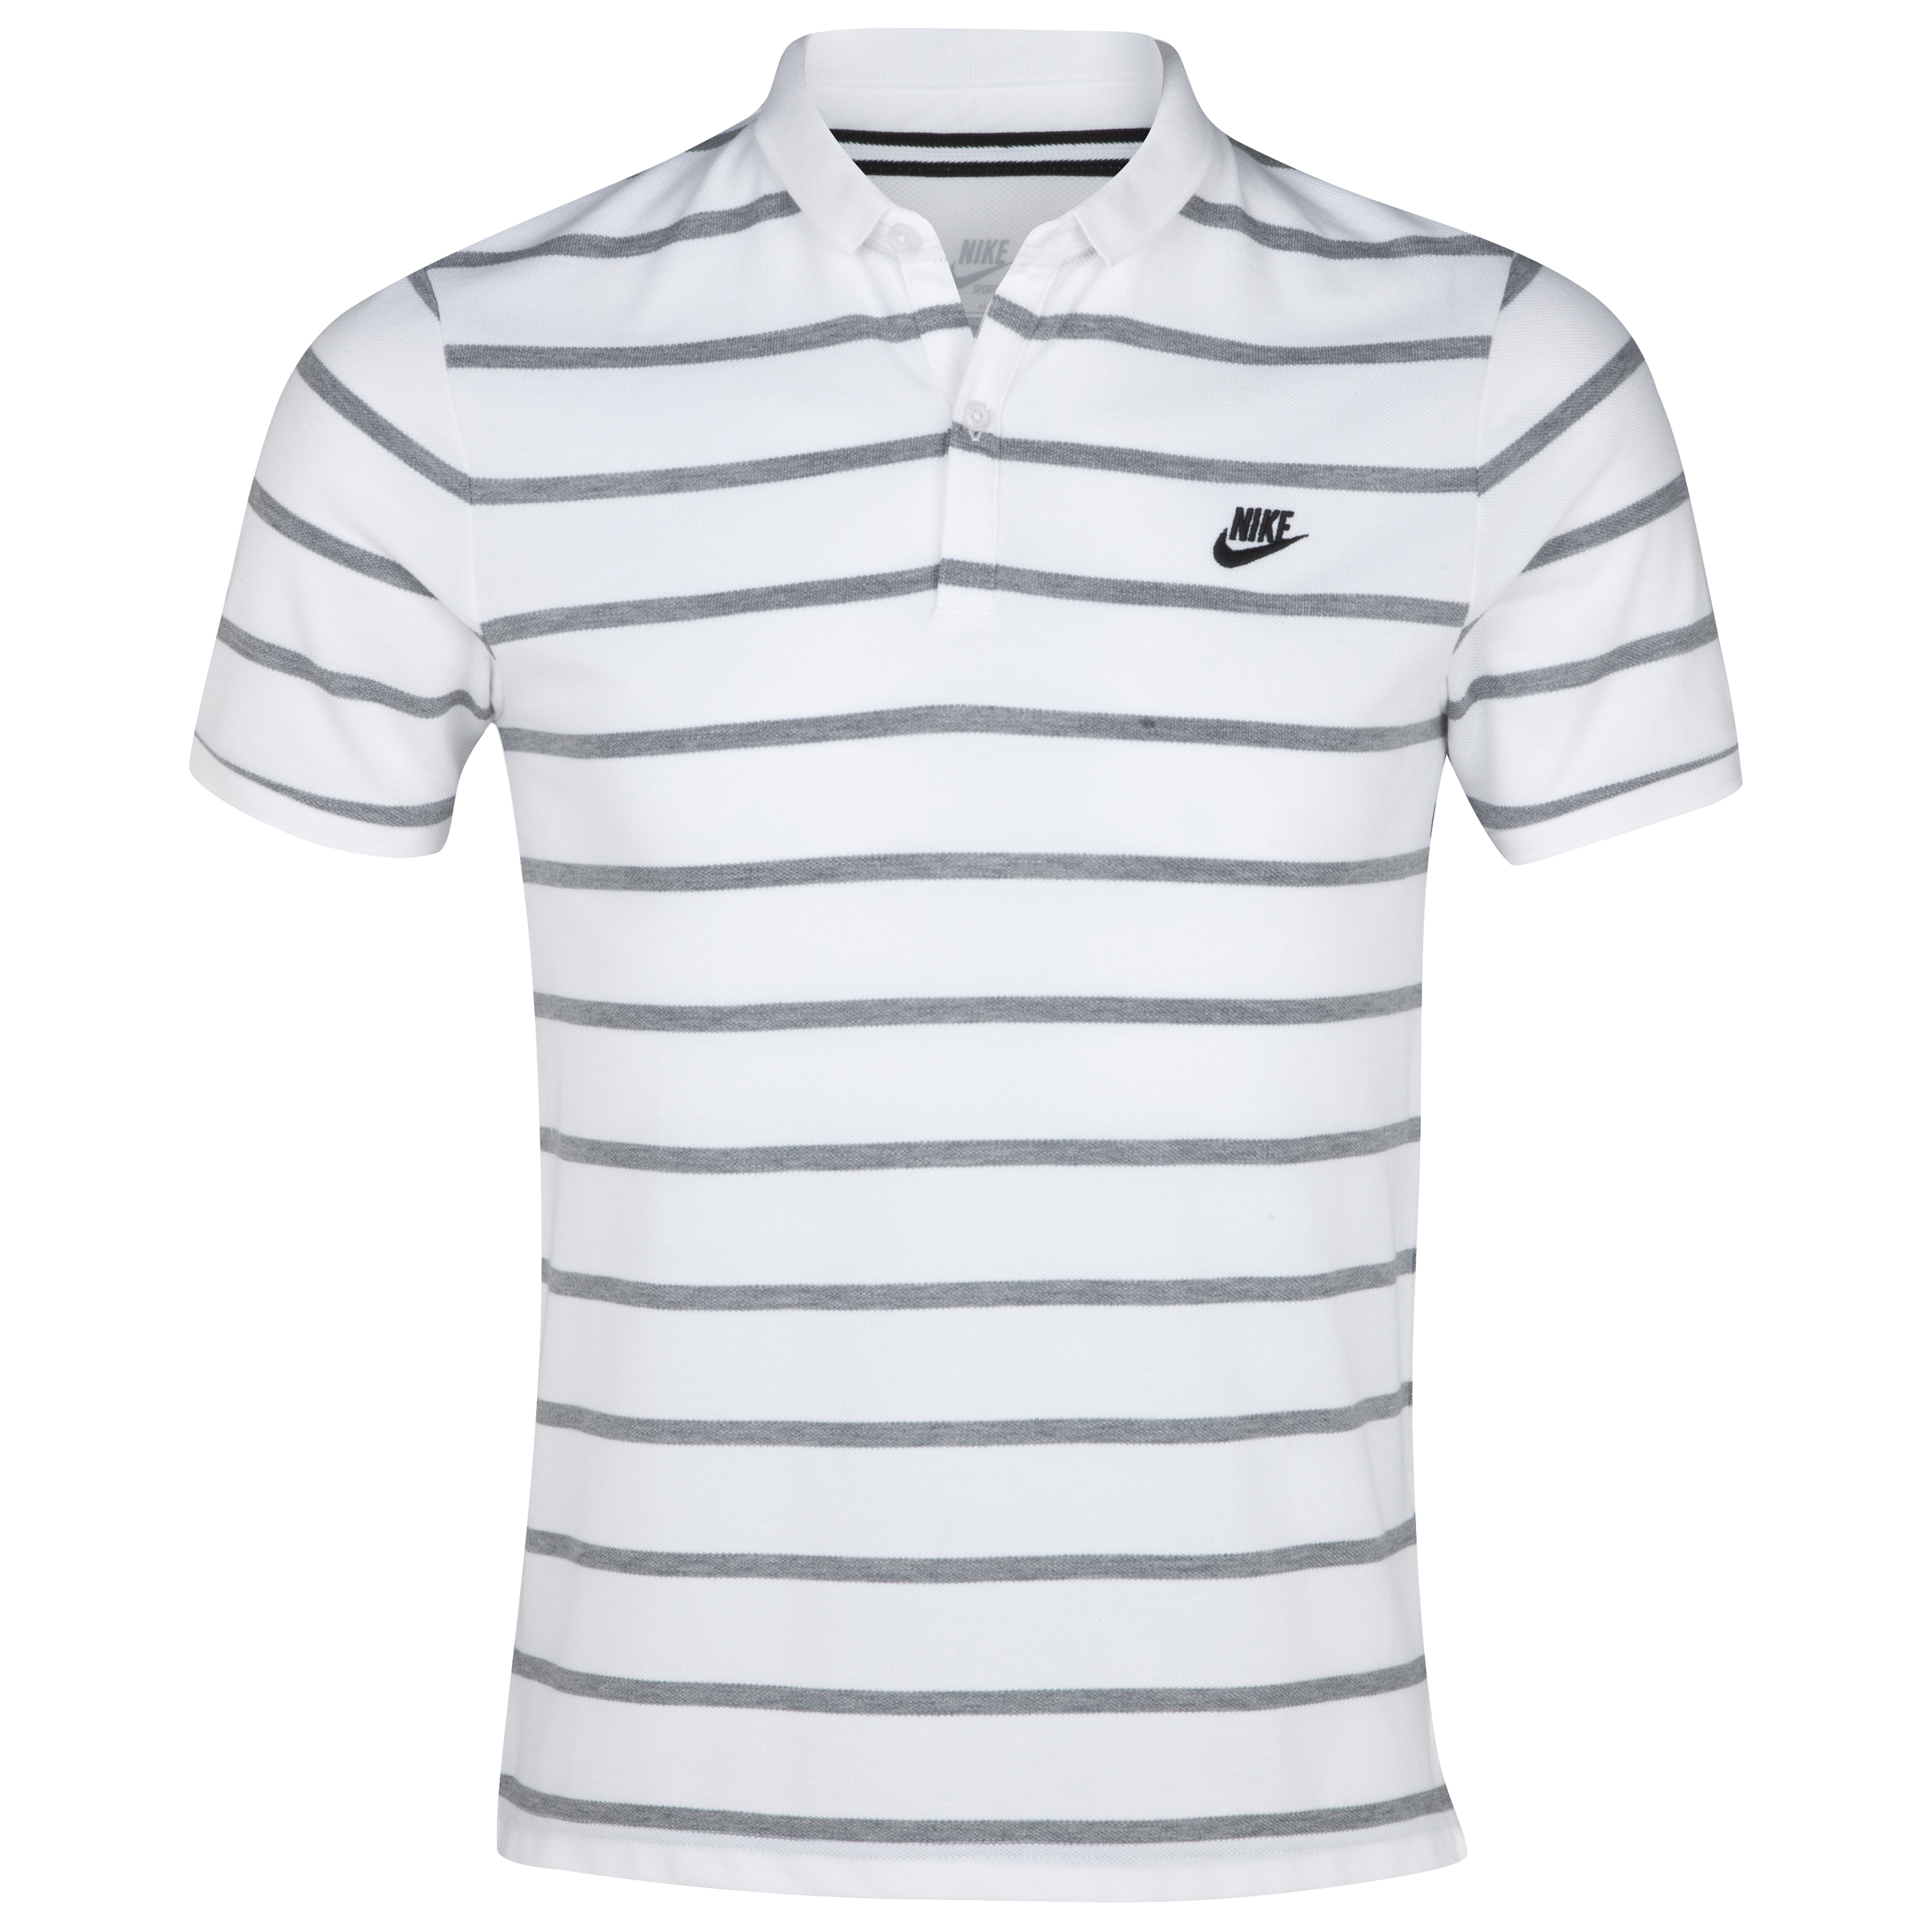 Nike Stripe Slim Collar Polo - White/Black